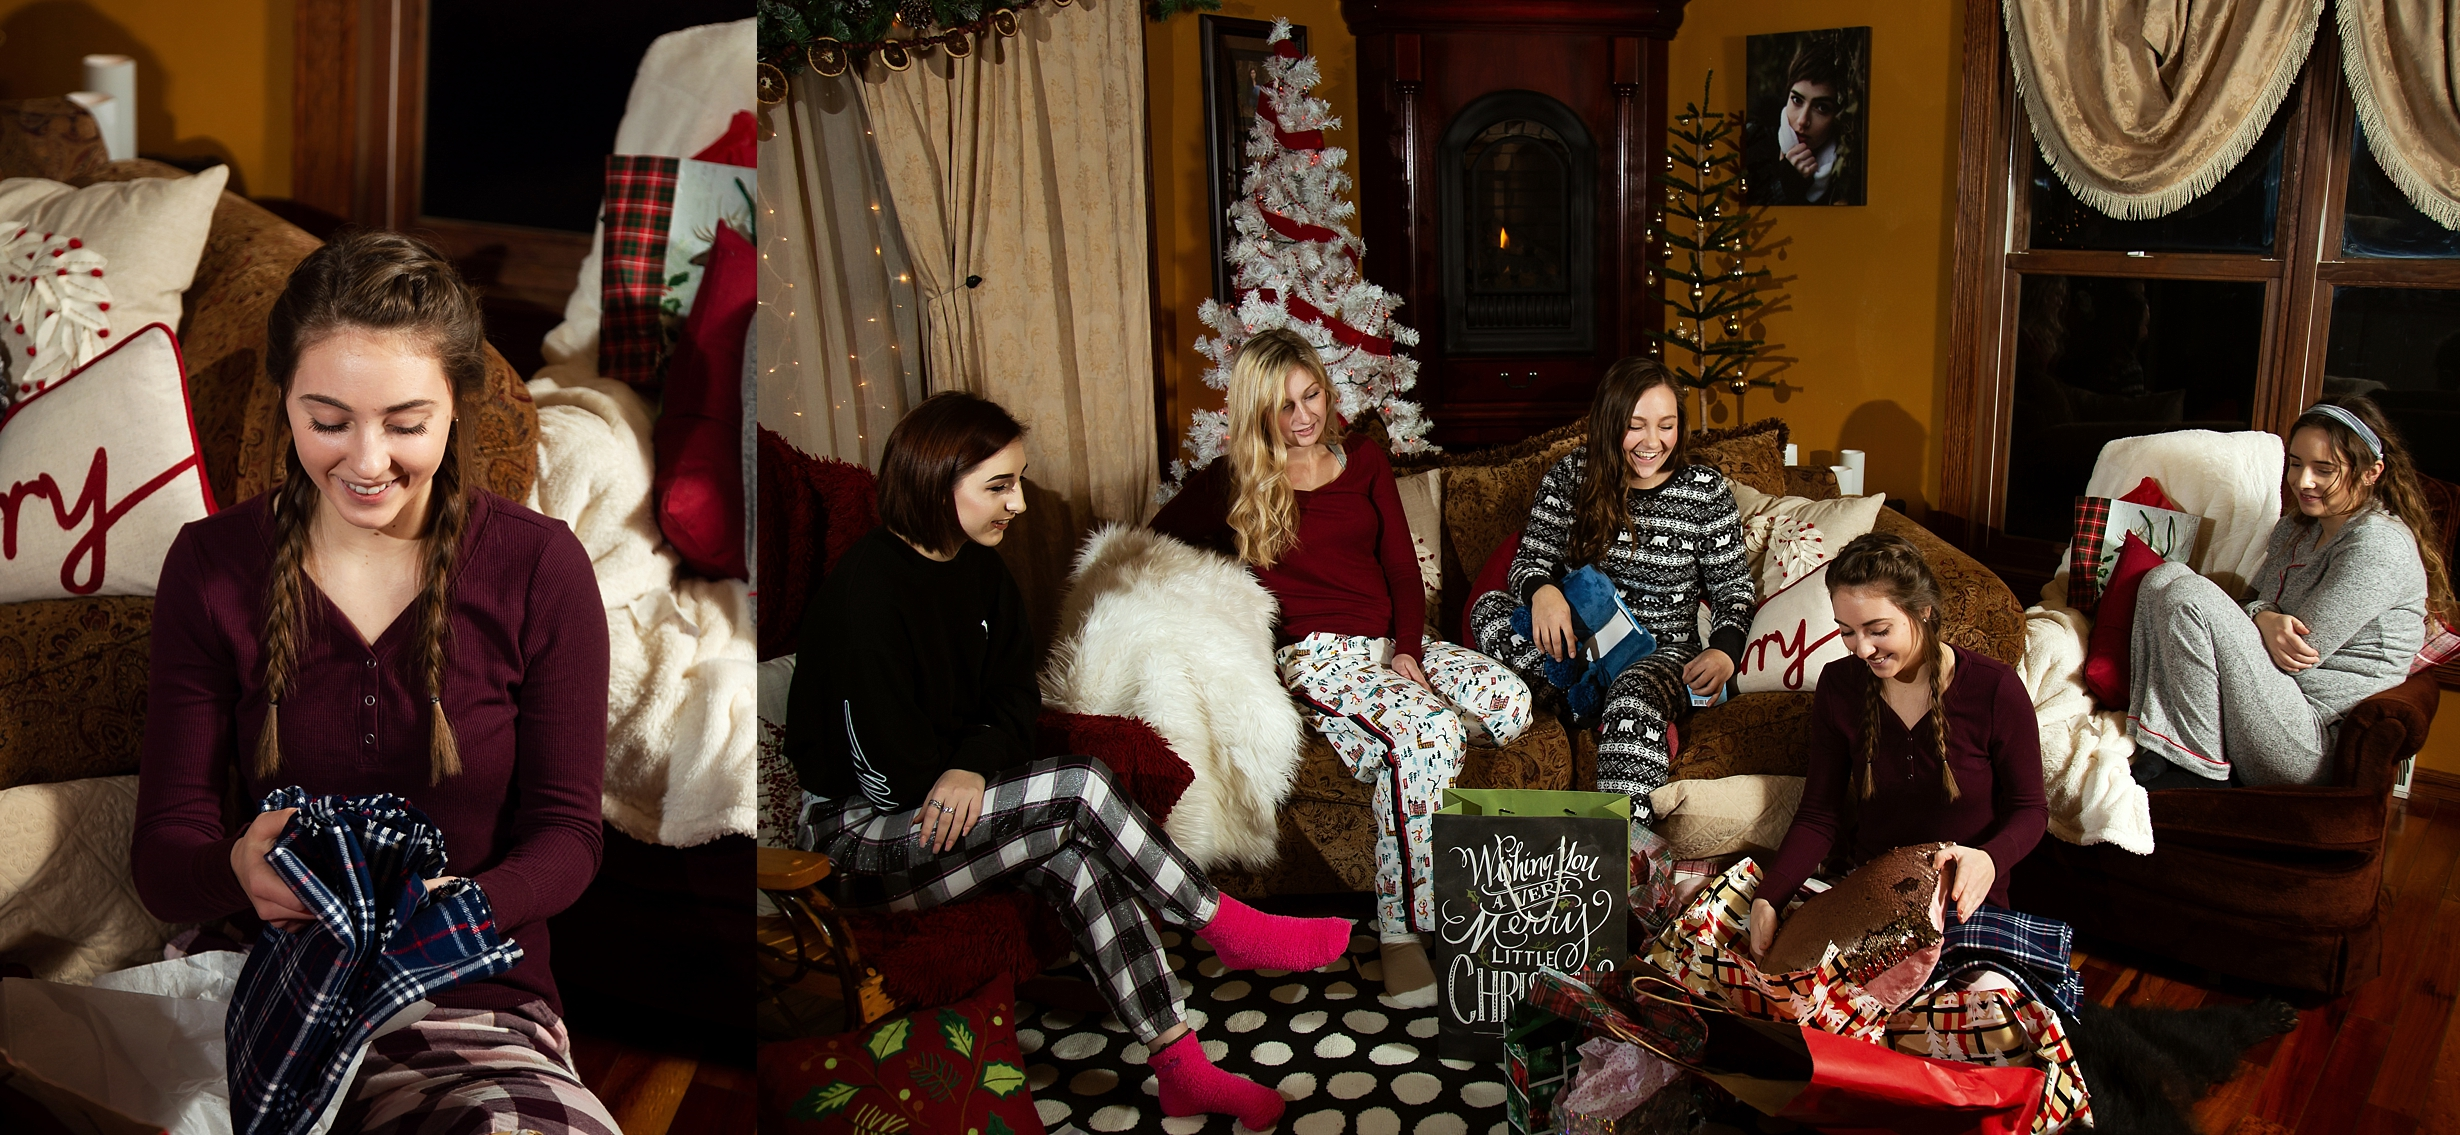 2019 VIP Representatives open christmas gifts in a white elephant exchange at Holiday Photoshoot Party